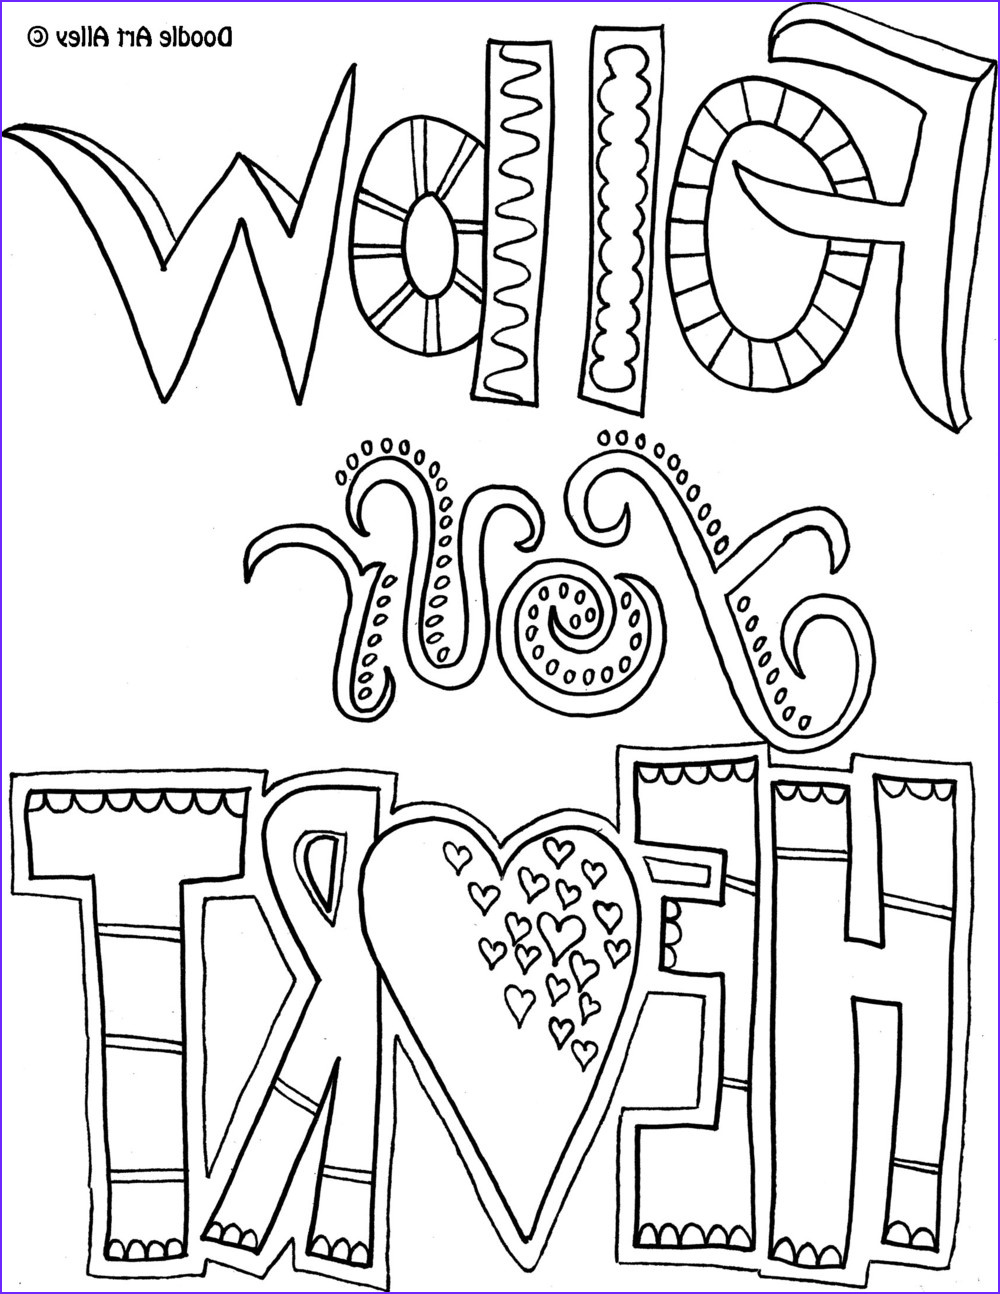 Inspirational Quotes Coloring Pages Luxury Photos Be E A Coloring Book Enthusiast with Doodle Art Alley